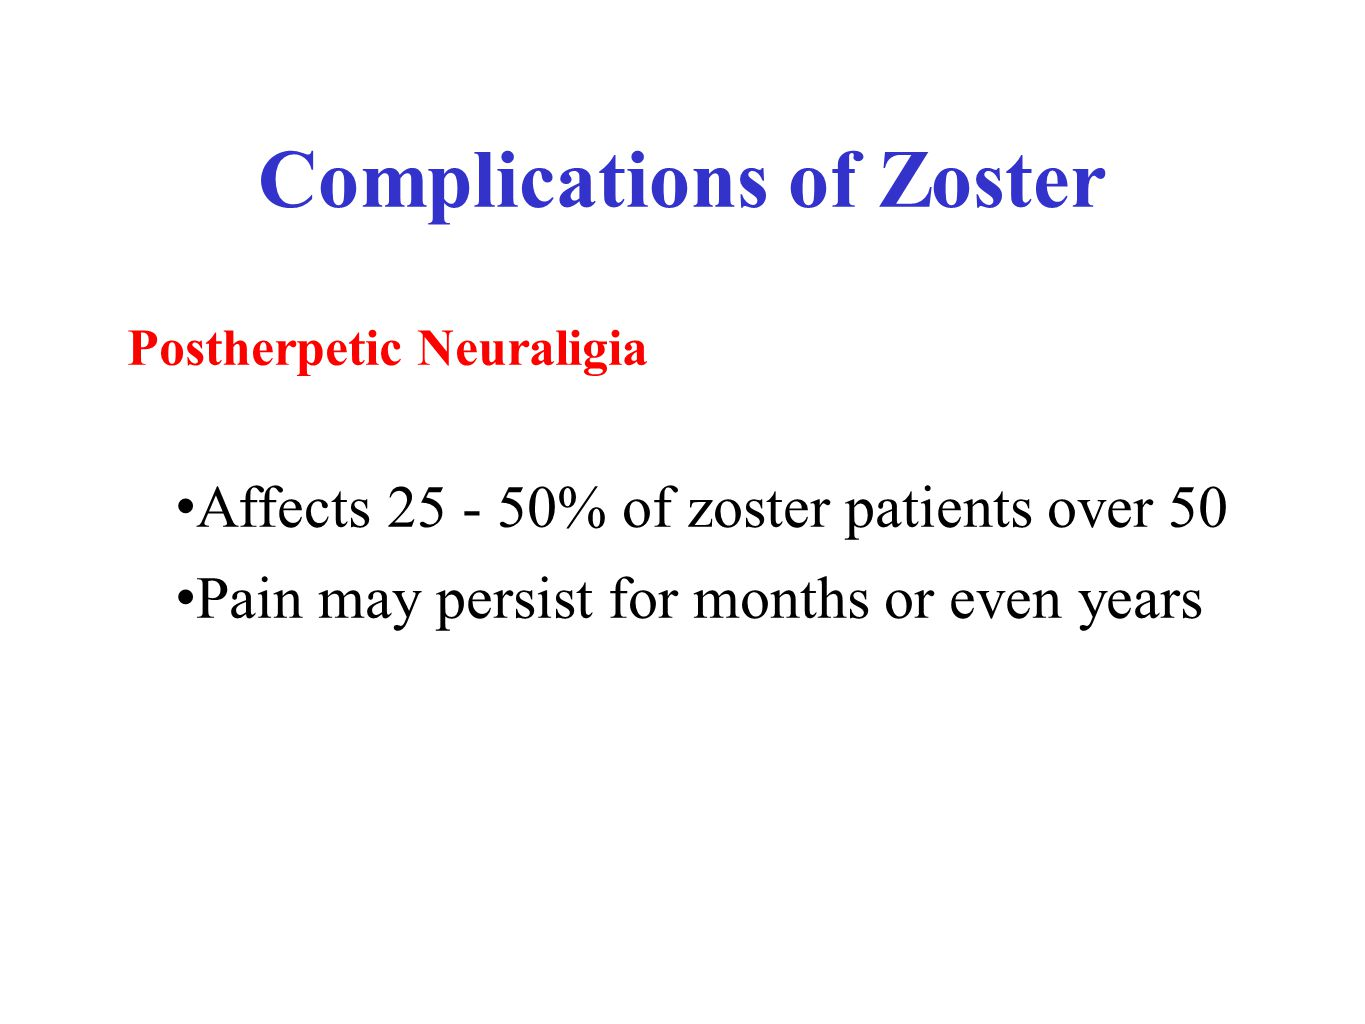 Complications of Zoster Postherpetic Neuraligia Affects 25 - 50% of zoster patients over 50 Pain may persist for months or even years